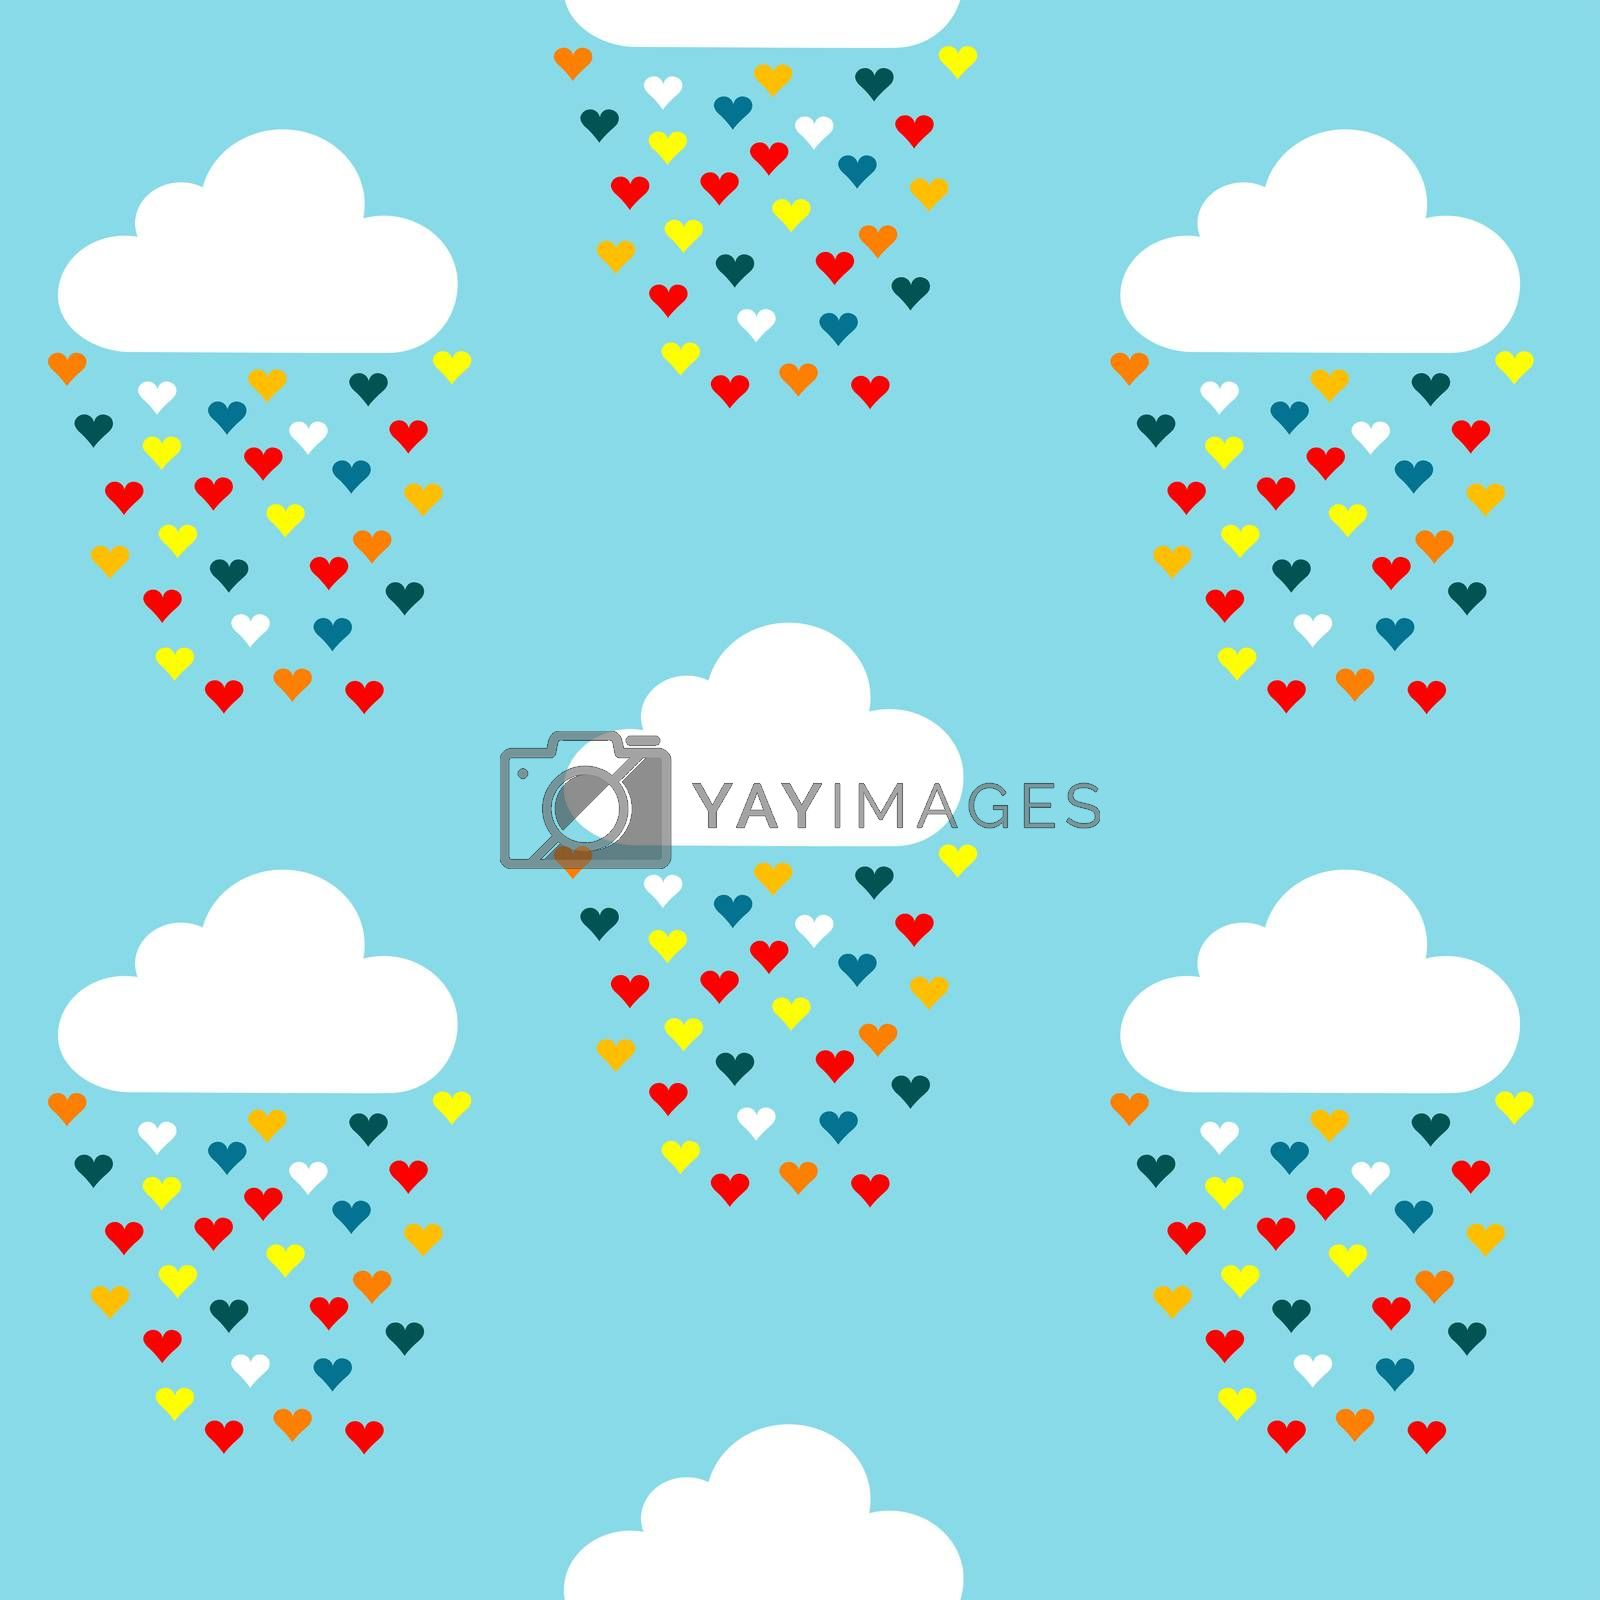 Seamless pattern with clouds and colored hearts rain